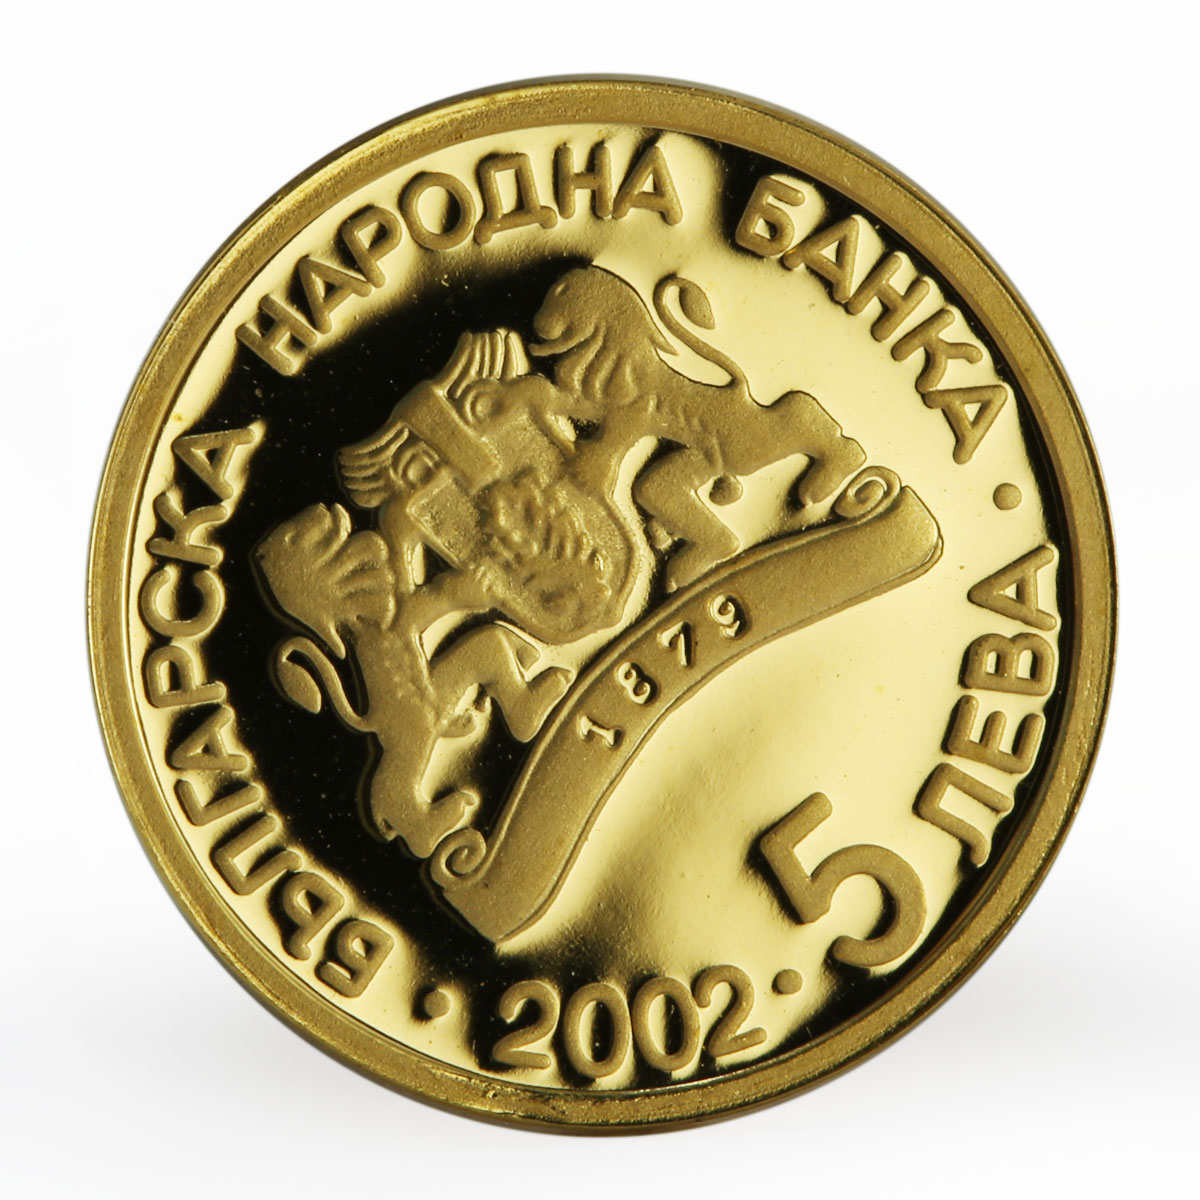 Bulgaria 5 leva Olympic Games Cycling Athens sport proof gold coin 2002